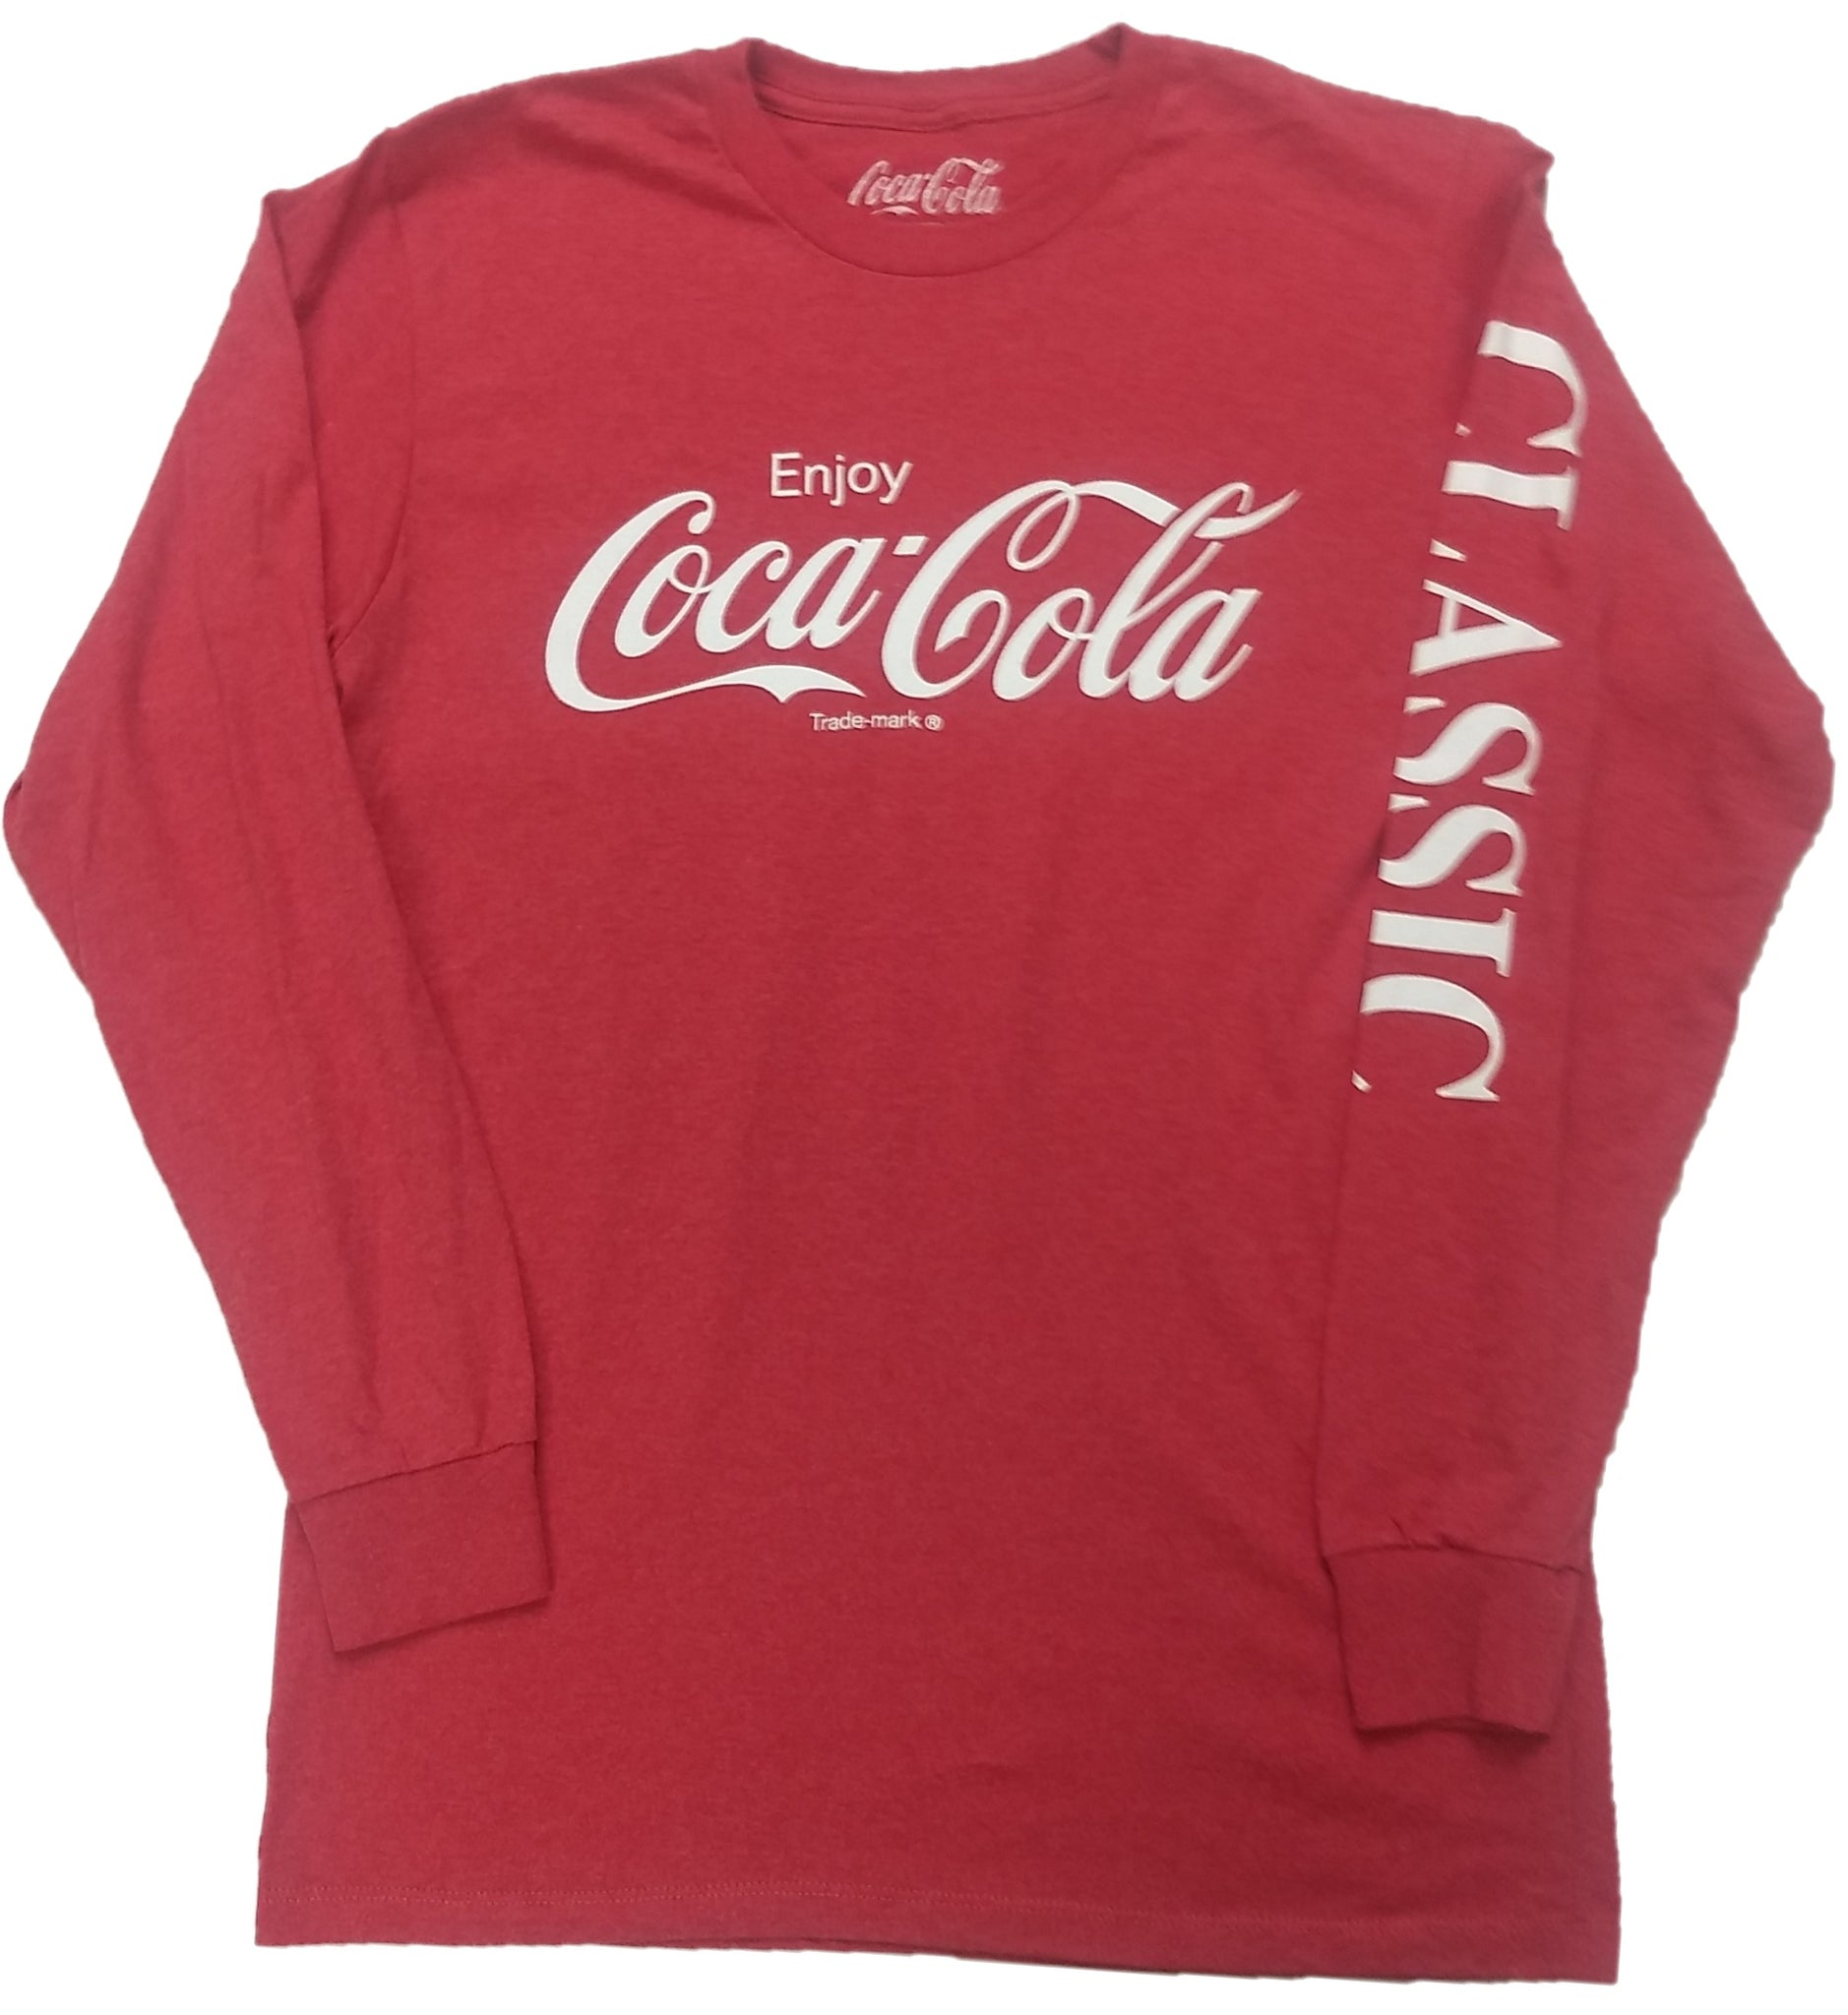 Enjoy Coca-Cola Coke Long Sleeve Mens Red T-Shirt